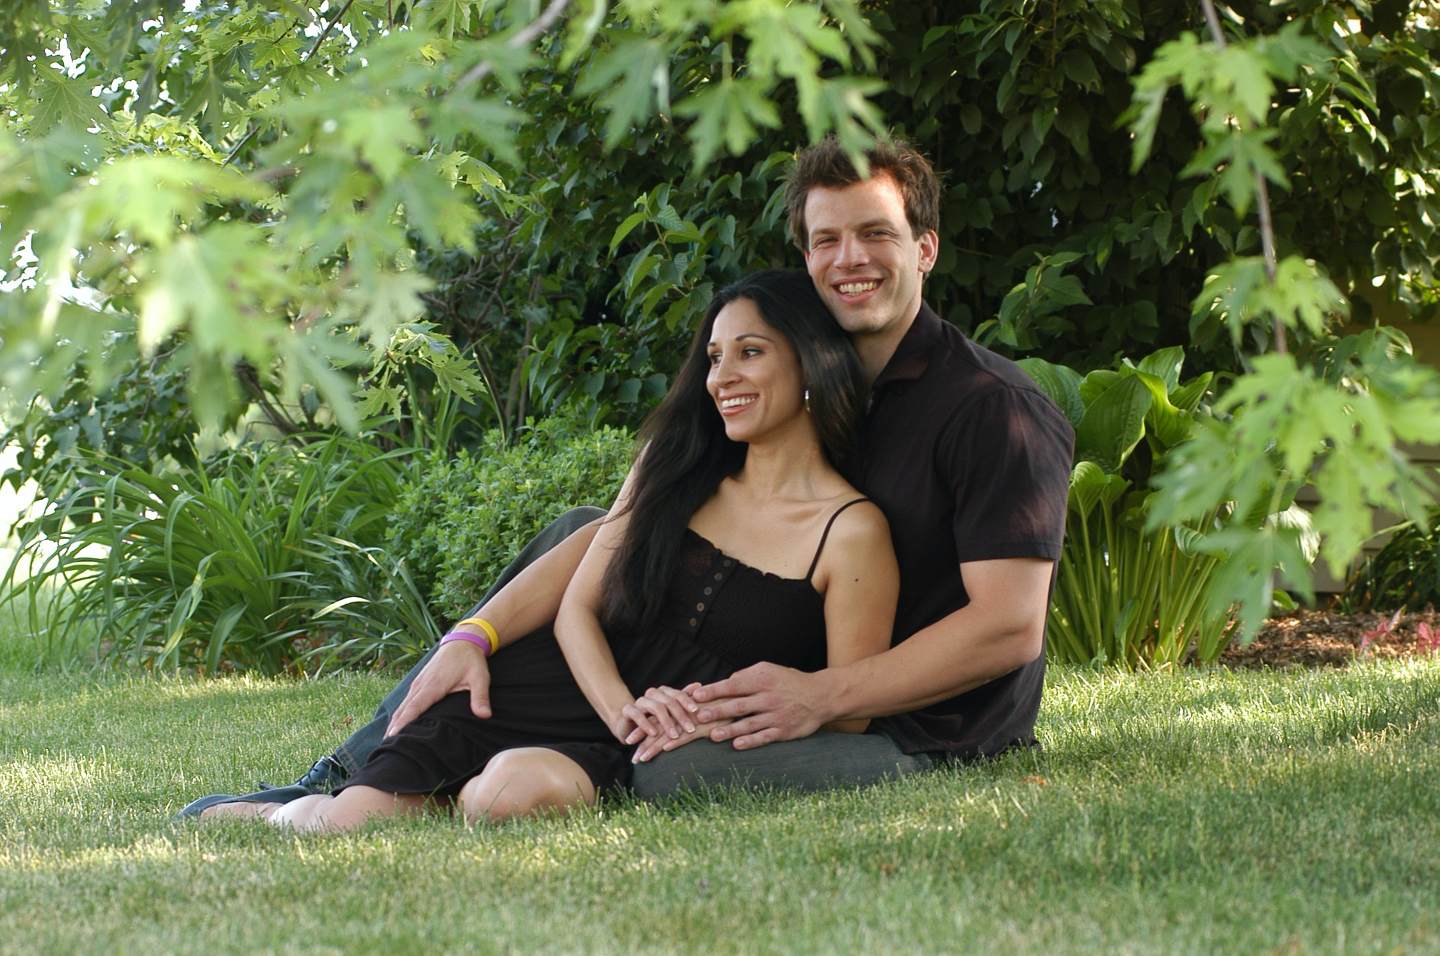 Portrait of couple outdoors: Handsome young man seated on ground with long haired young lady. Both smiling brightly.